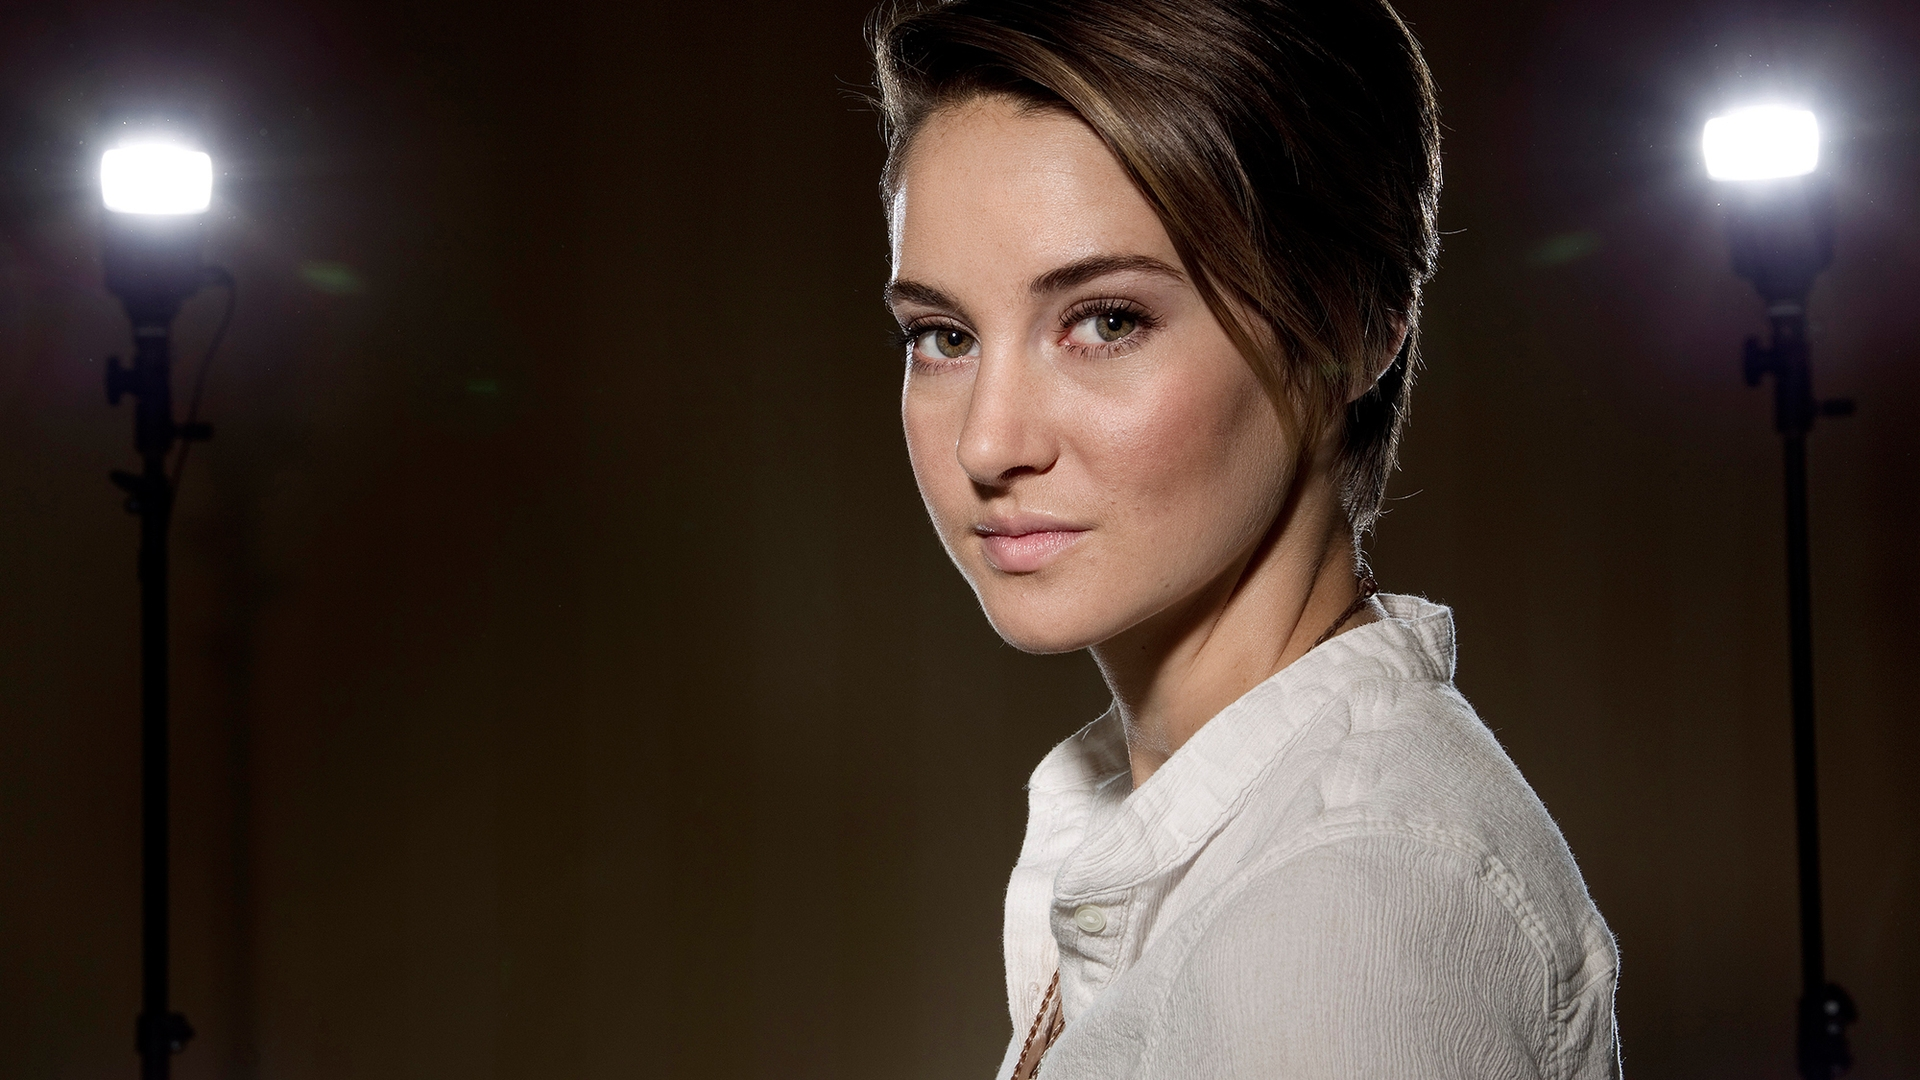 Shailene woodley hd desktopmobile wallpapers page 1 shailene woodley with short hair thecheapjerseys Choice Image